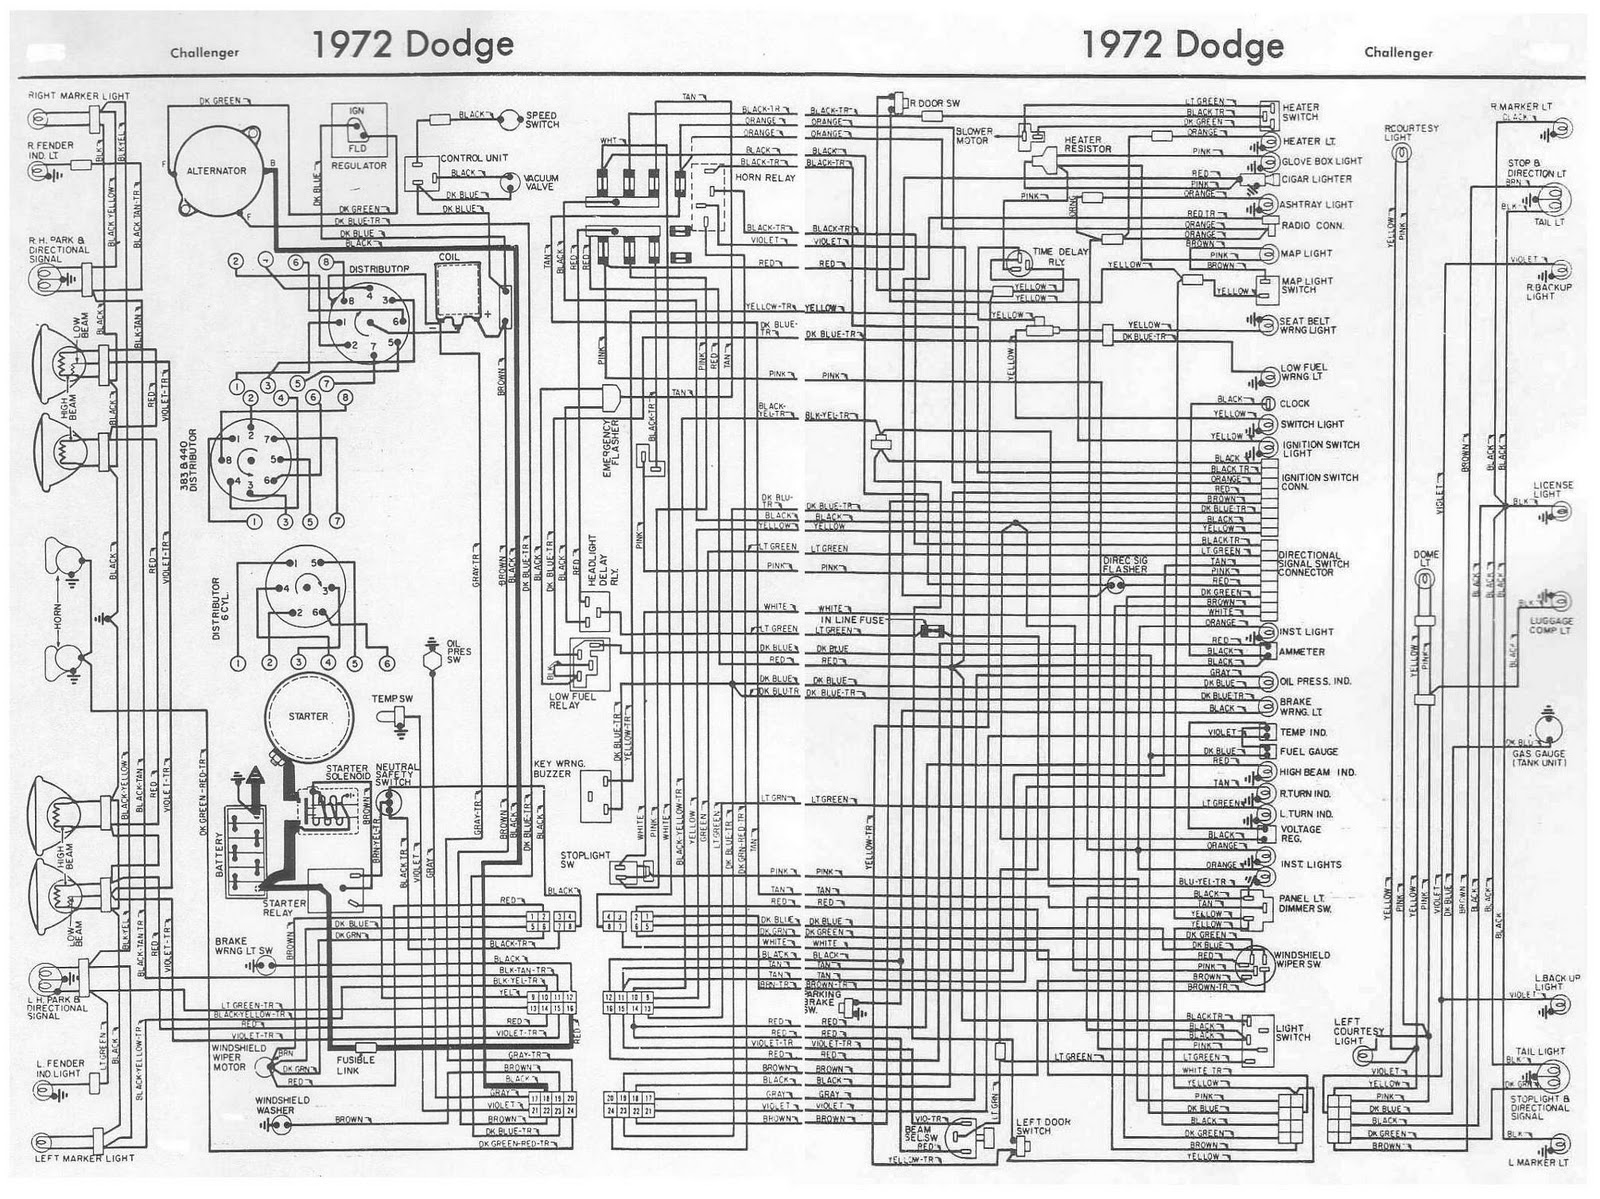 Dodge+Challenger+1972+Complete+Wiring+Diagram challenger wiring diagram bush hog wiring diagram \u2022 wiring diagram 3-Way Switch Wiring Diagram for Switch To at panicattacktreatment.co